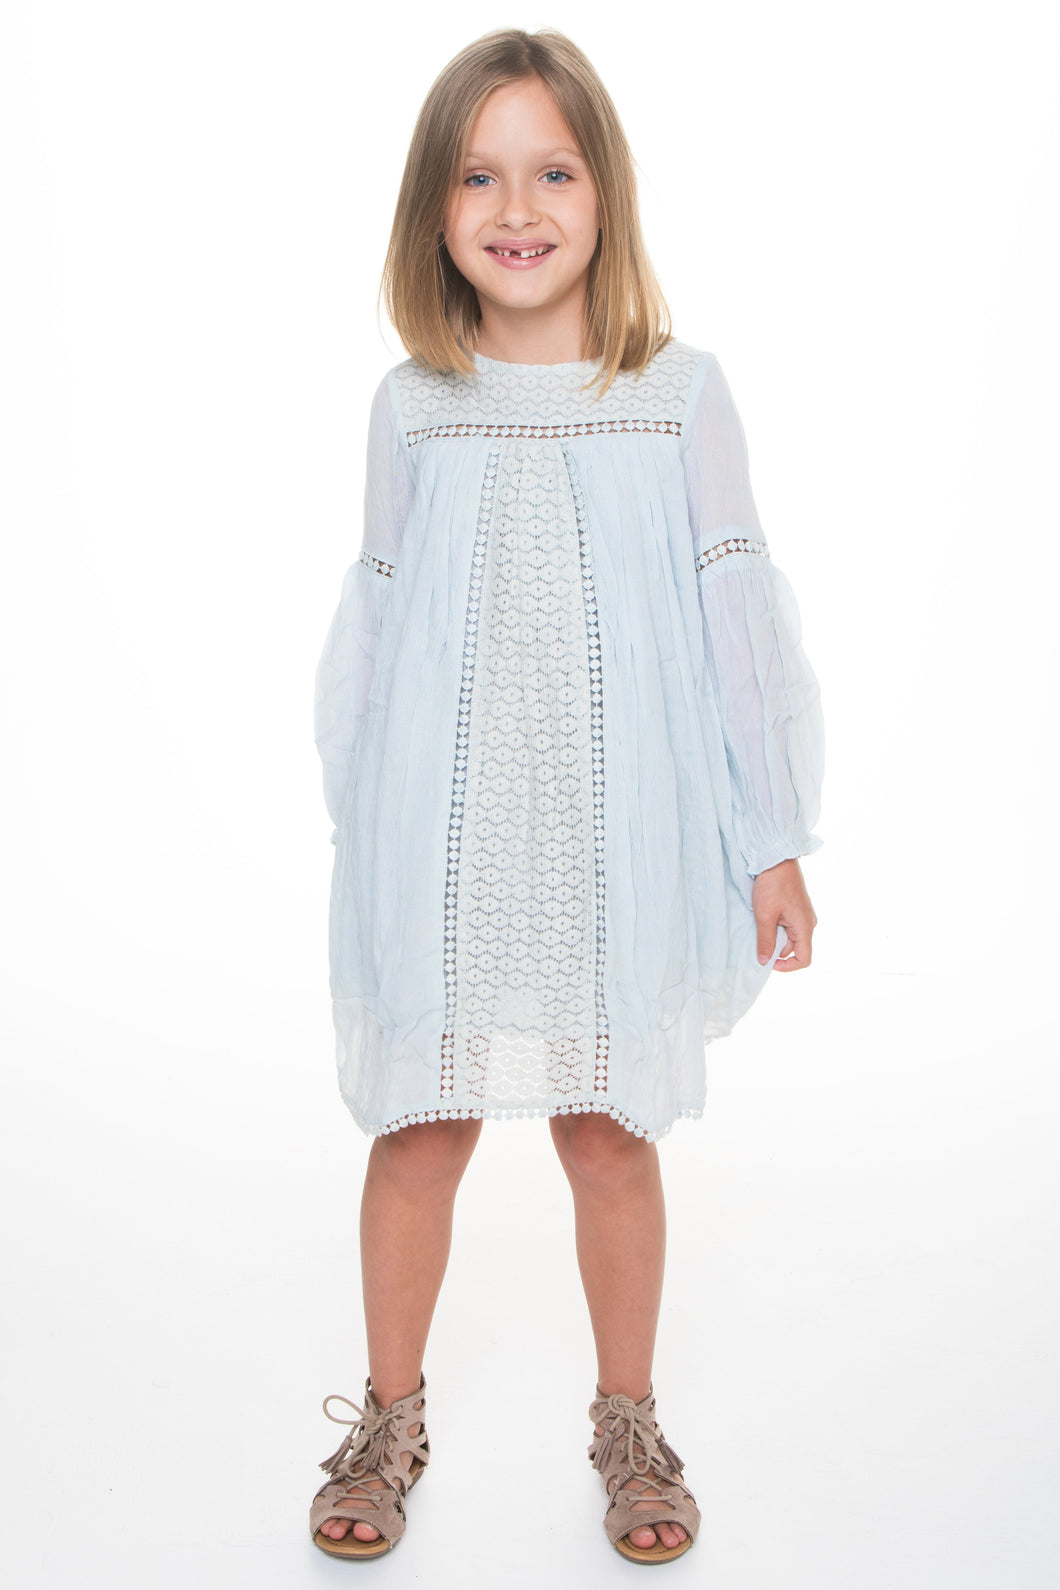 Light Blue Lace Detail Dress - Kids Clothing, Dress - Girls Dress, Yo Baby Online - Yo Baby